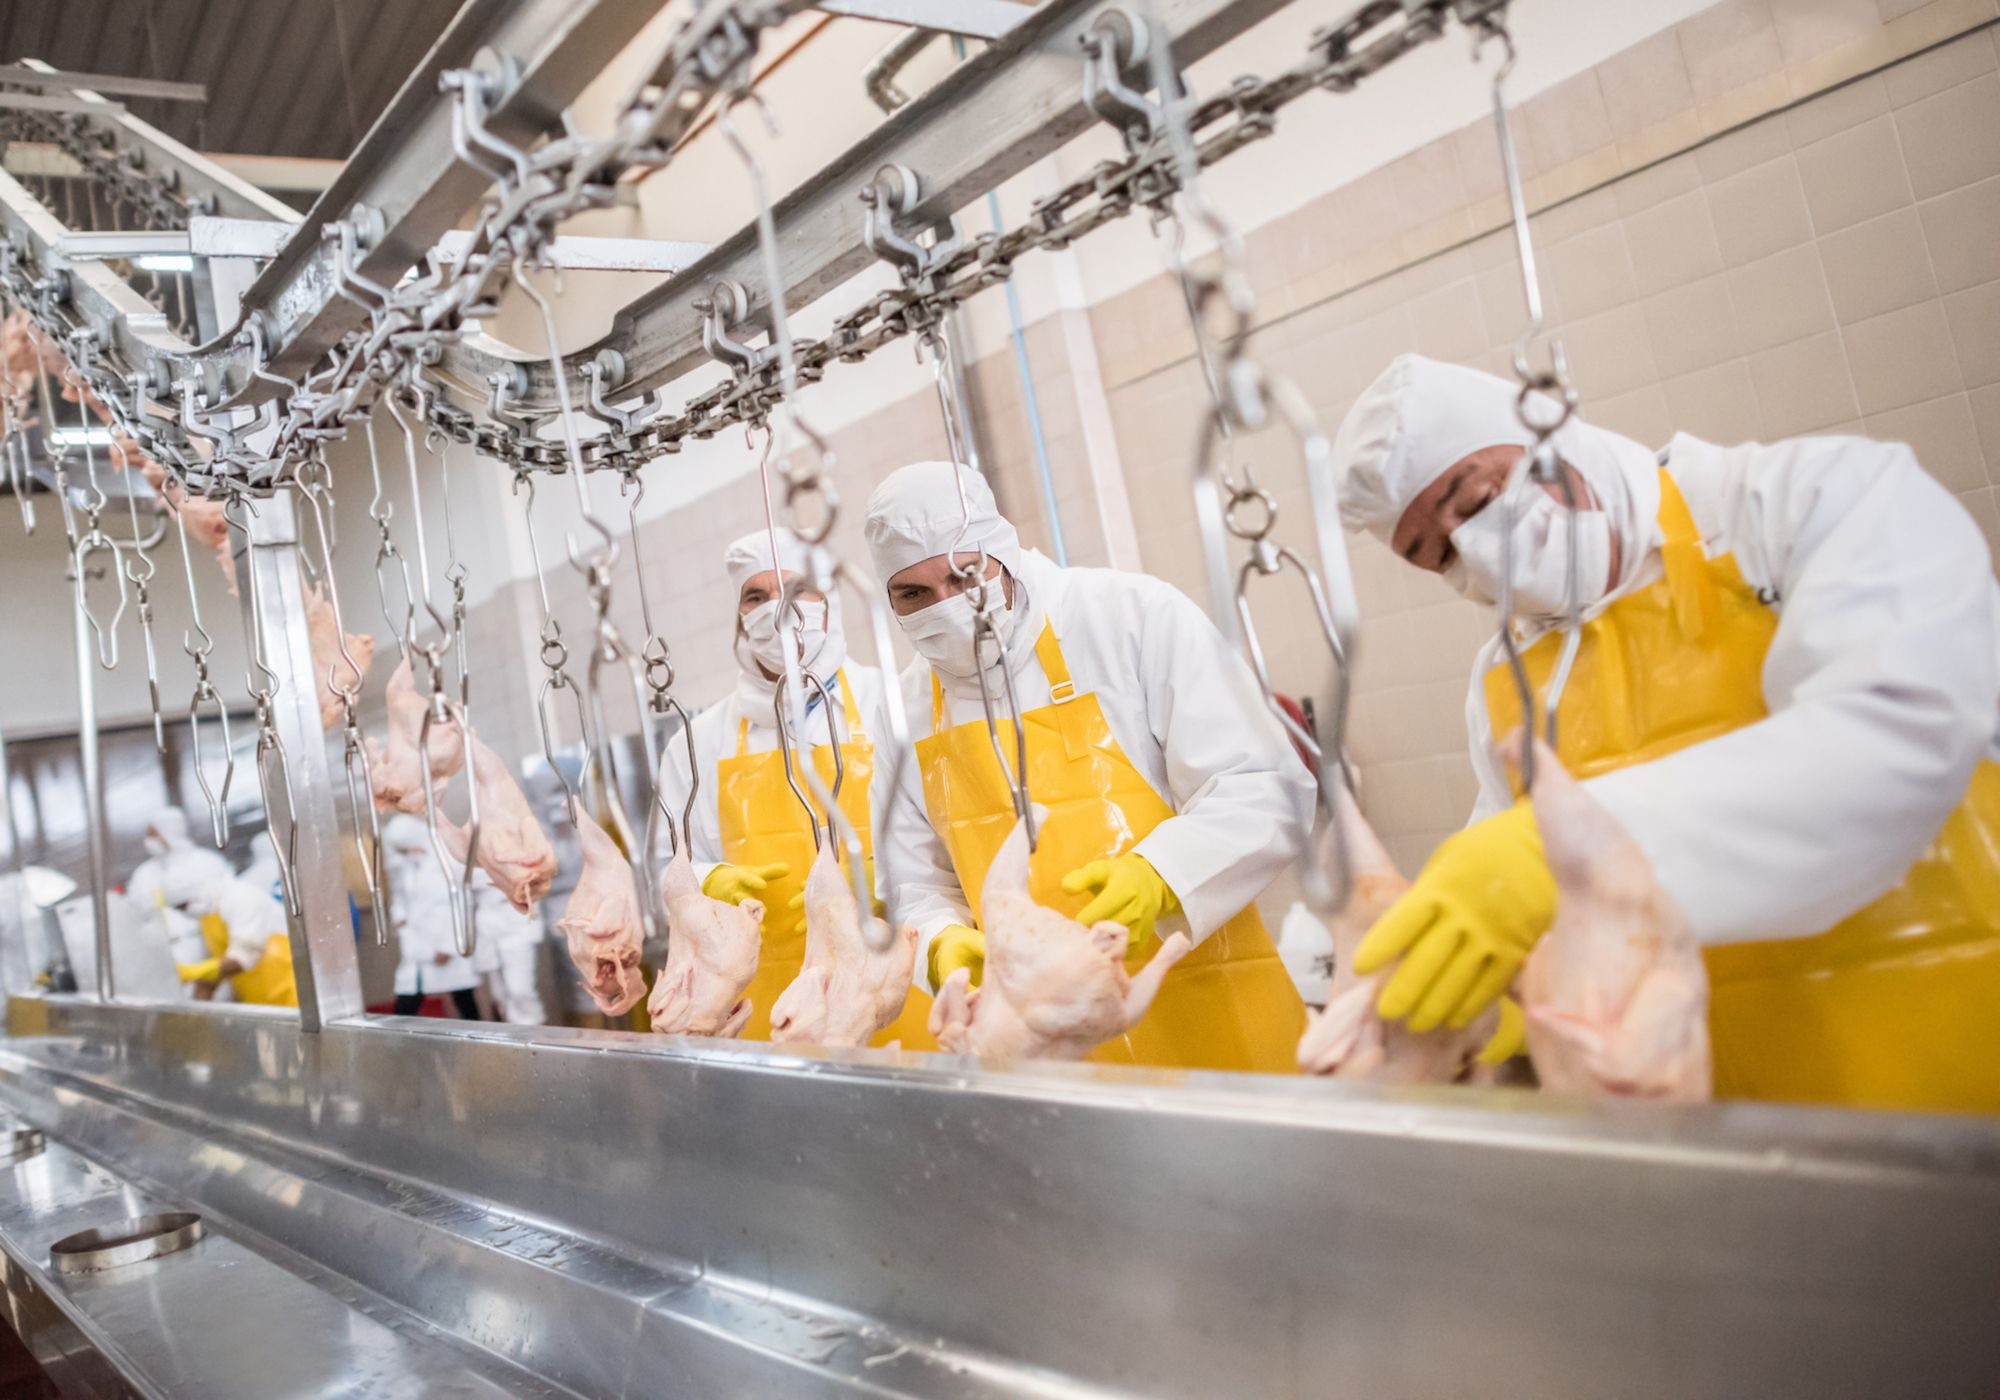 Workers at a food factory doing quality control con chickens